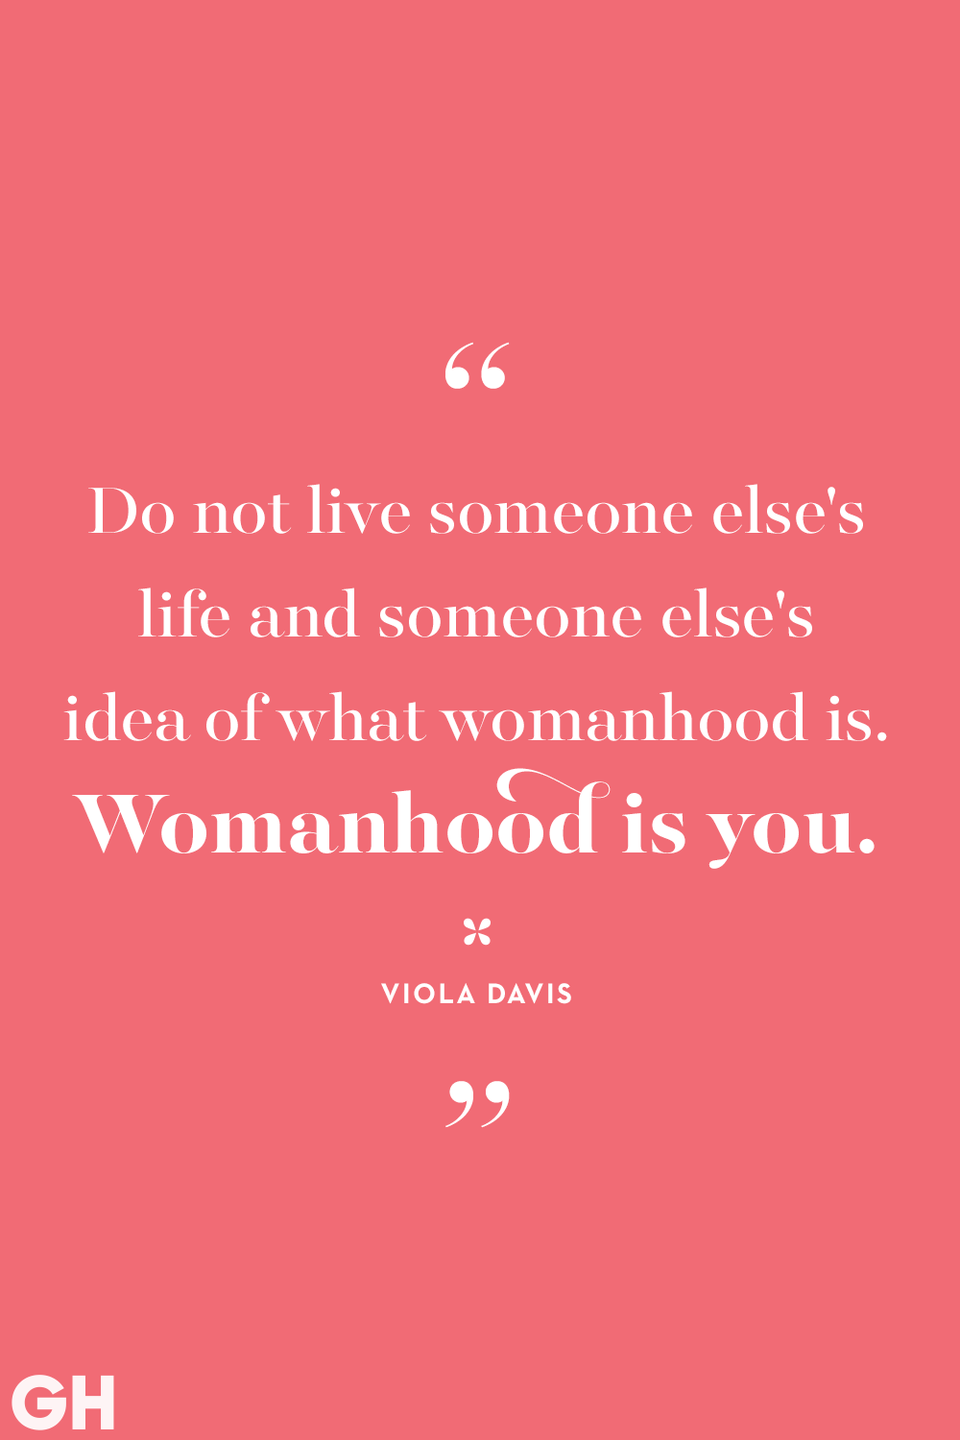 <p>Do not live someone else's life and someone else's idea of what womanhood is. Womanhood is you.</p>